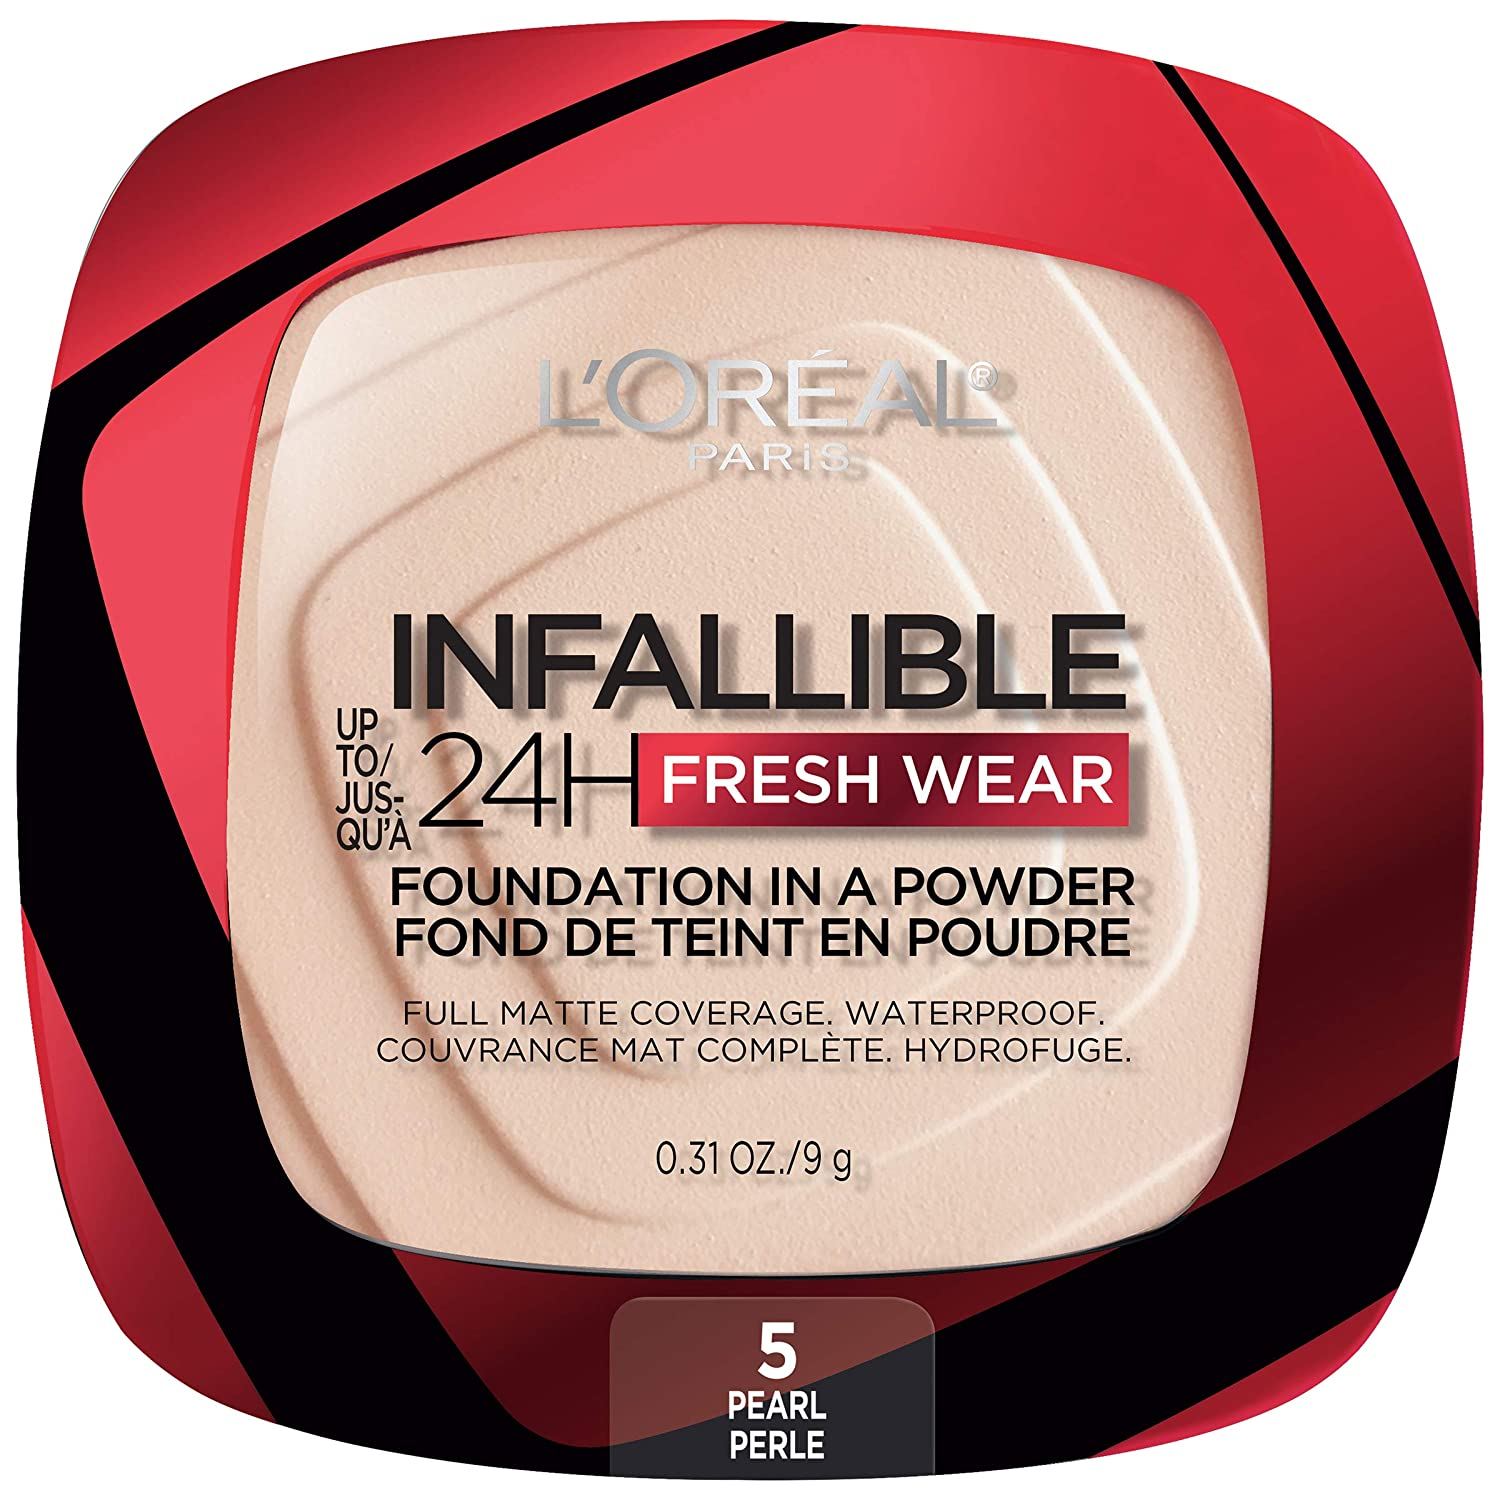 L'Oreal Paris Infallible Fresh Wear Foundation Max 69% OFF in t a famous Up Powder